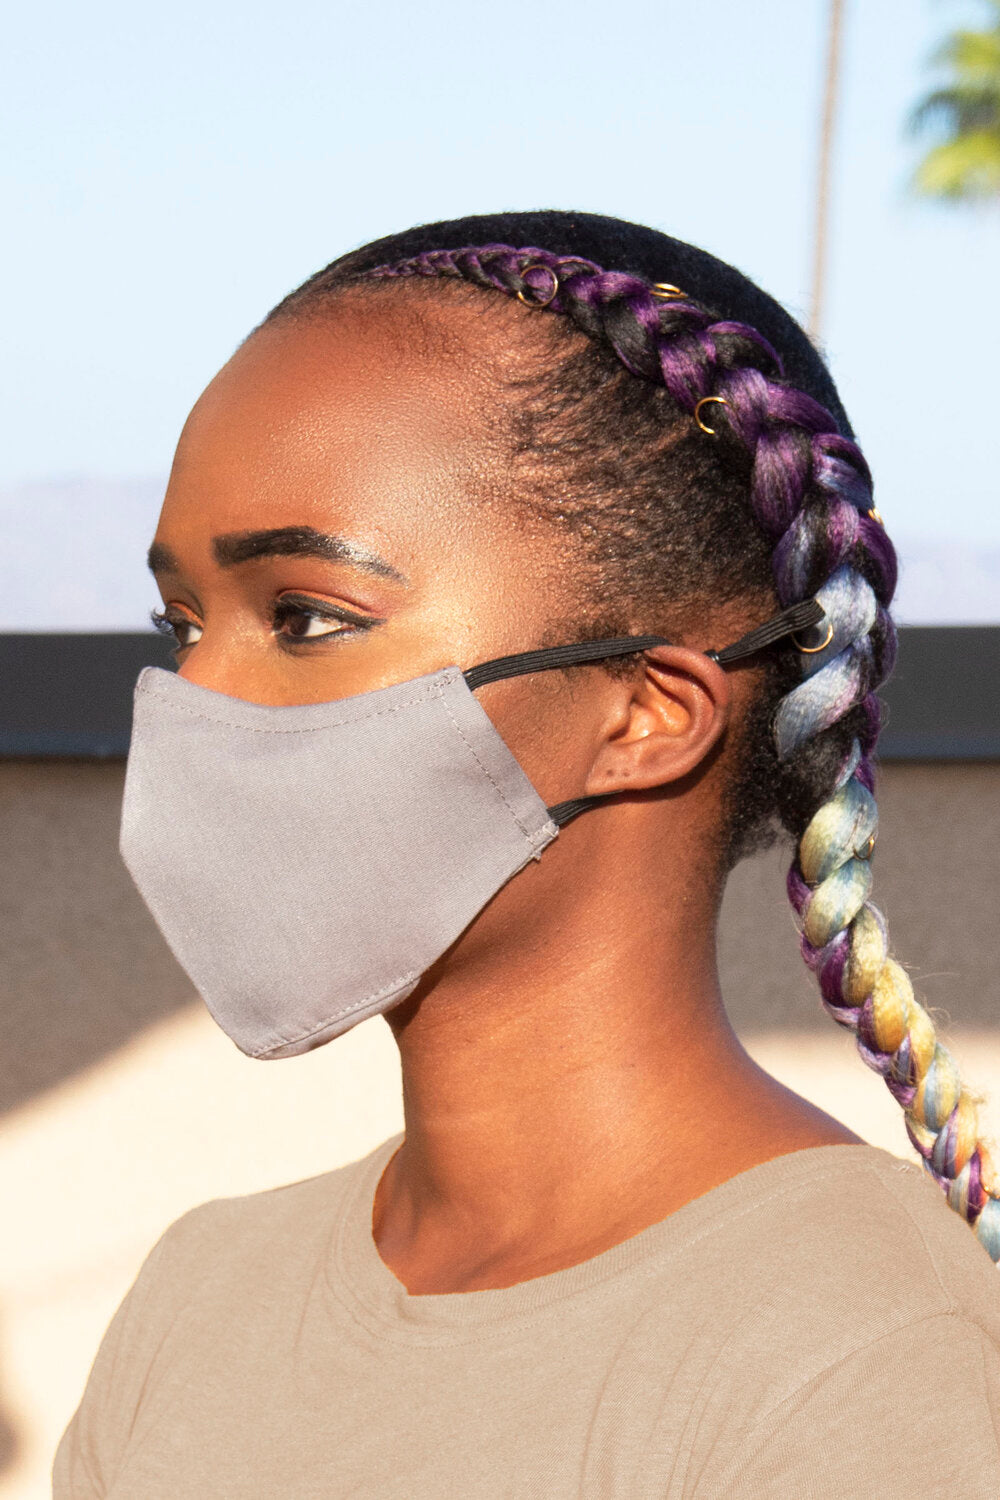 Grey Secure-Fit Face Mask - pacorogiene